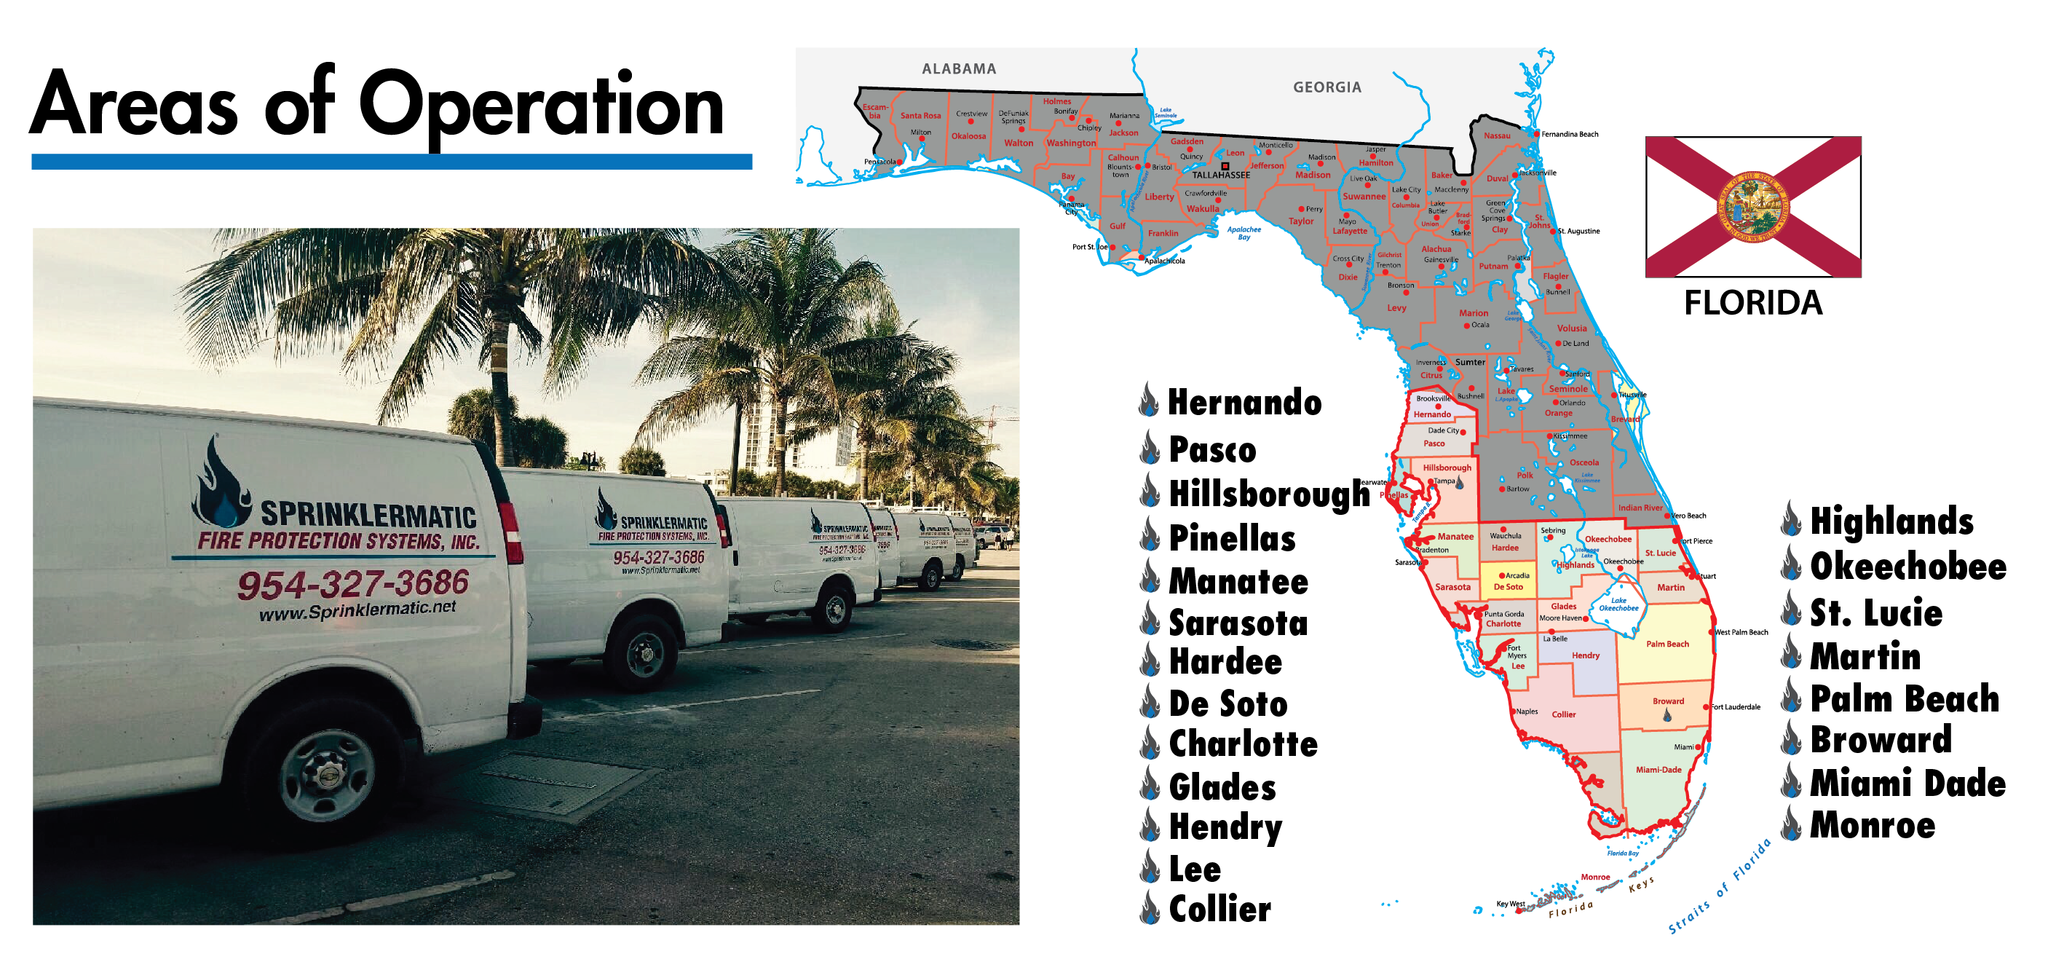 Fire Protection Tampa Florida offered by Sprinklermatic